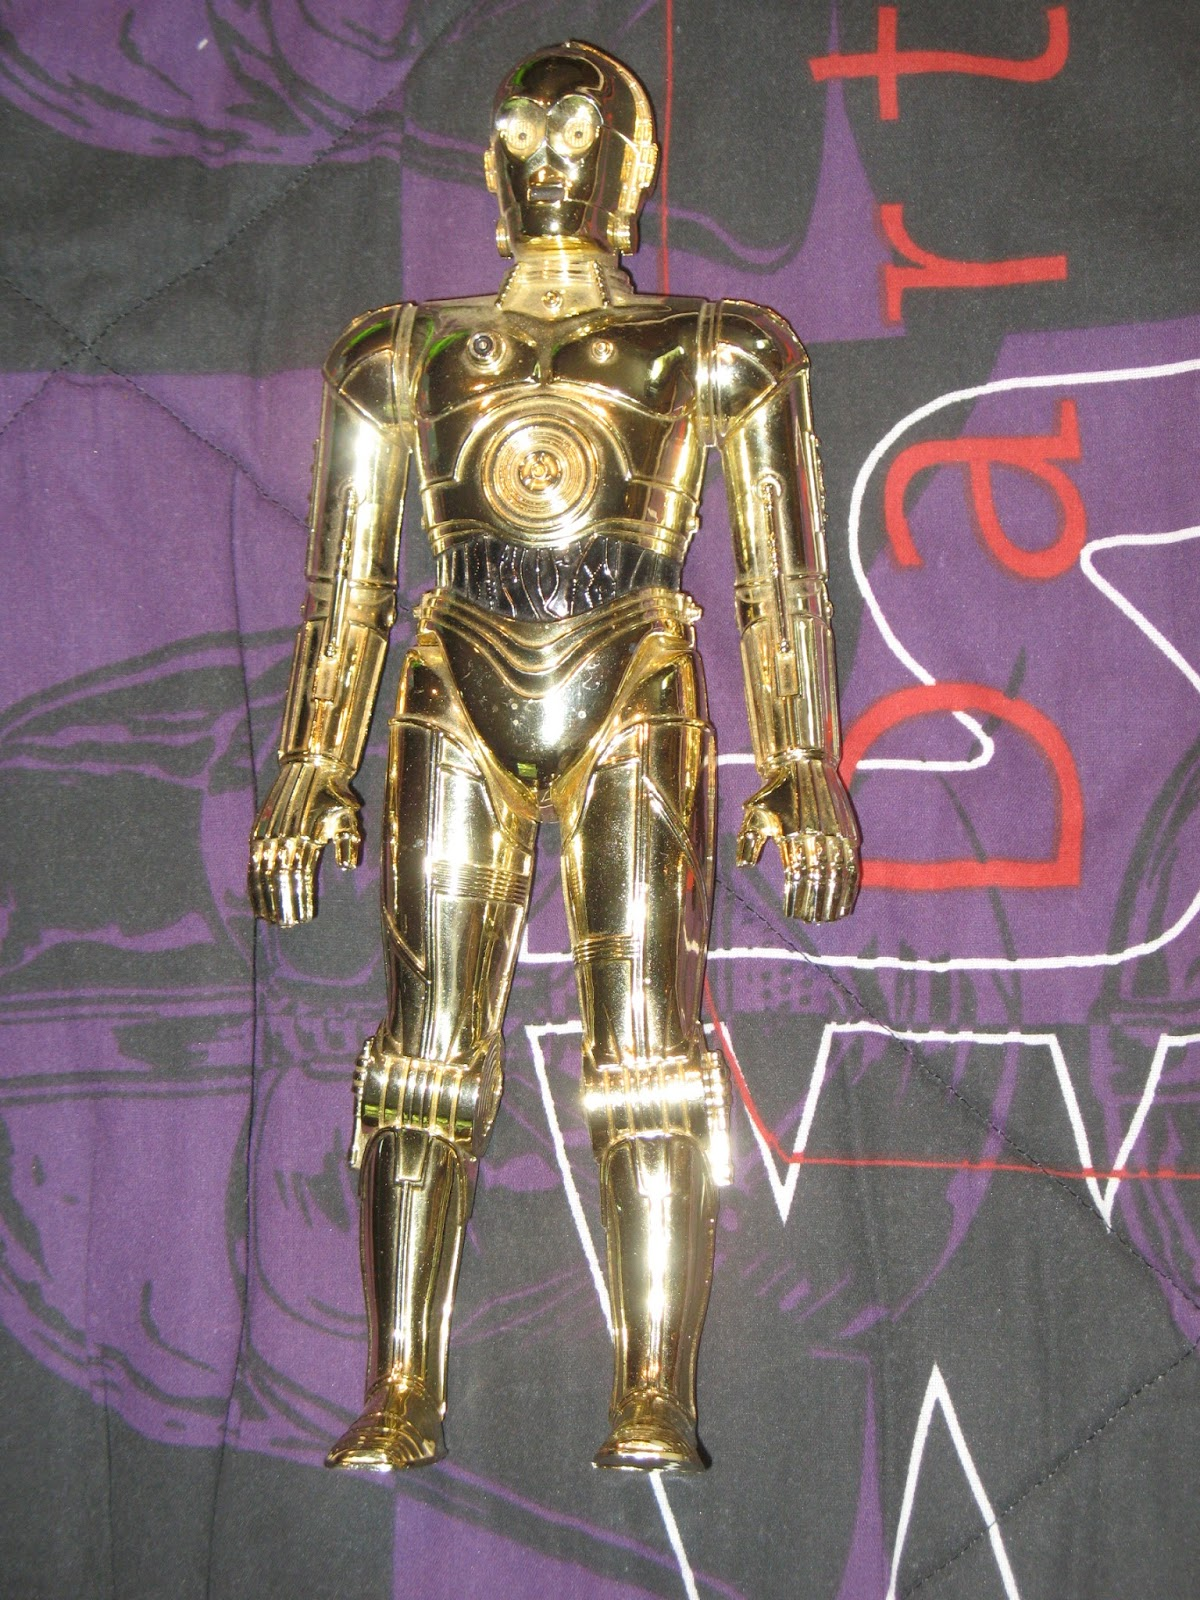 Kenner Star Wars Toys : Michael doherty s star wars collection for sale